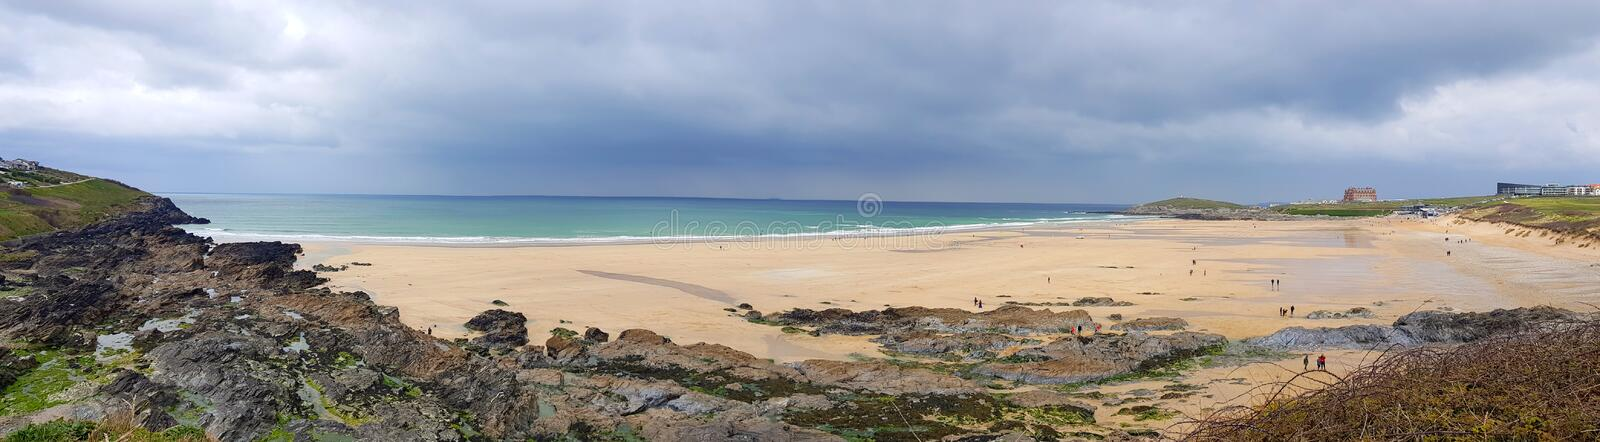 Fistral Beach, Newquay Cornwall, Uk. Fistral beach newquay cornwall,  Fistral Beach is in Fistral Bay on the north coast of Cornwall, England, United Kingdom. It stock image